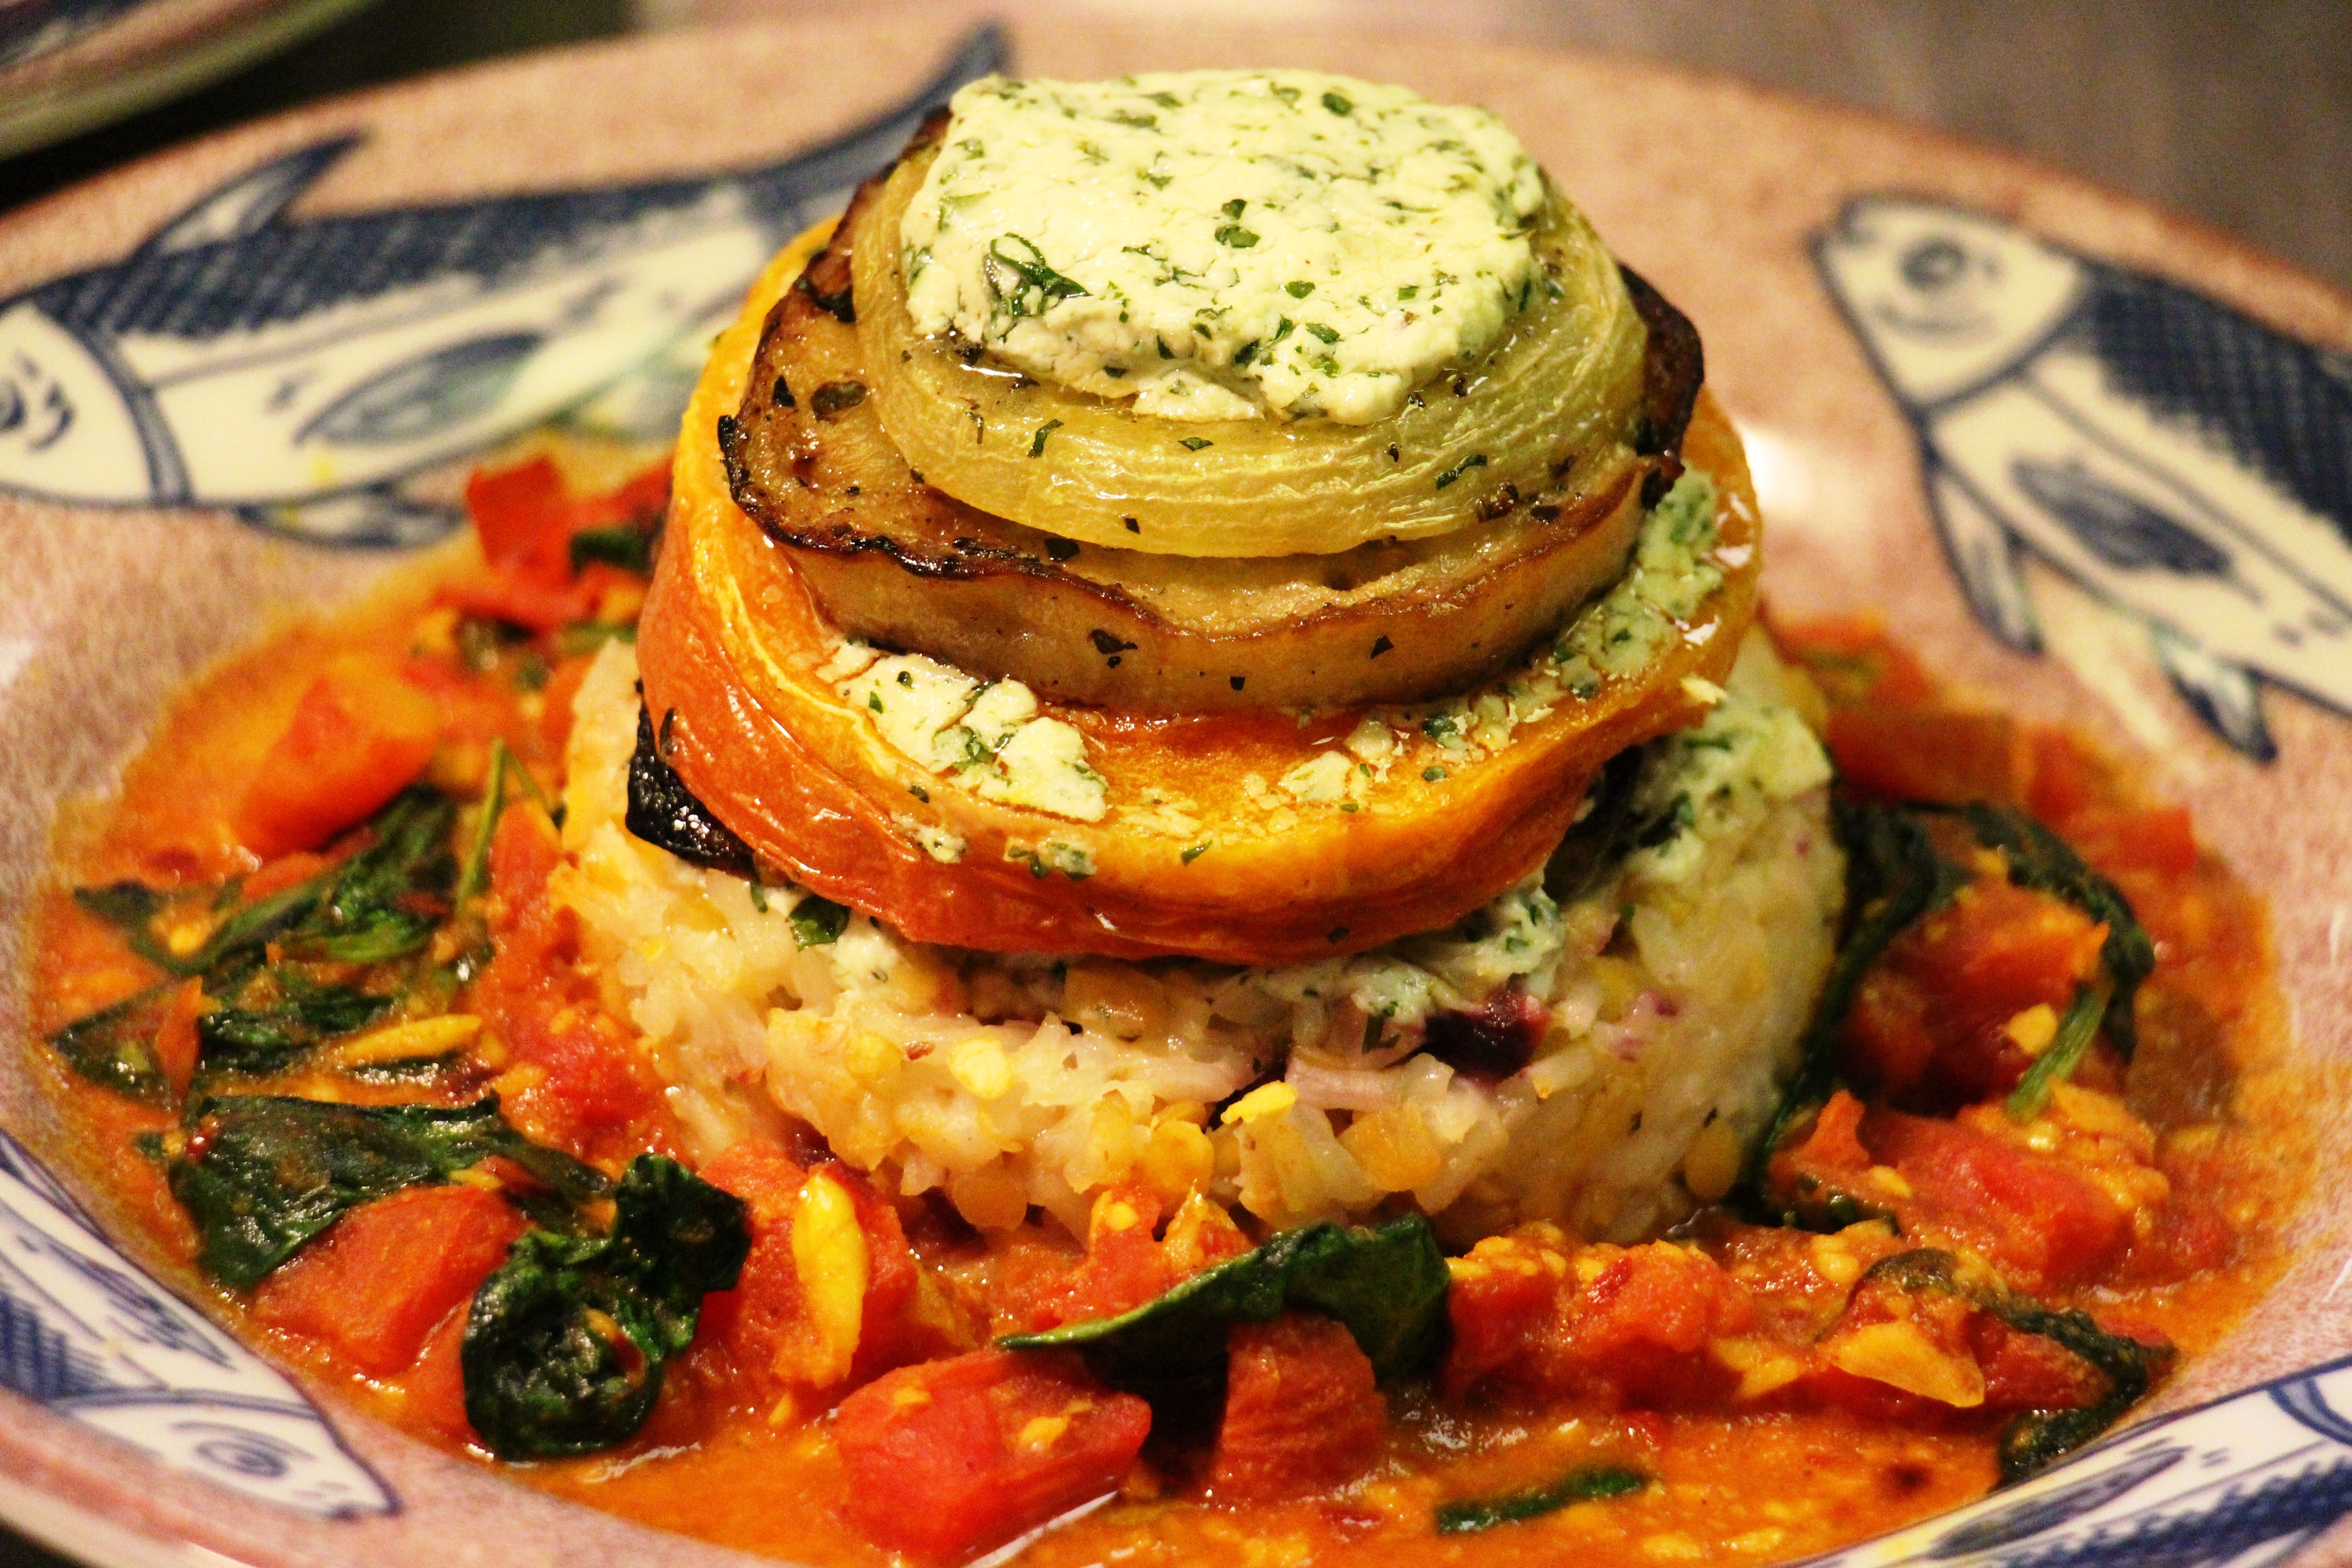 Veggie Stack with Herbed Goat Cheese Spread